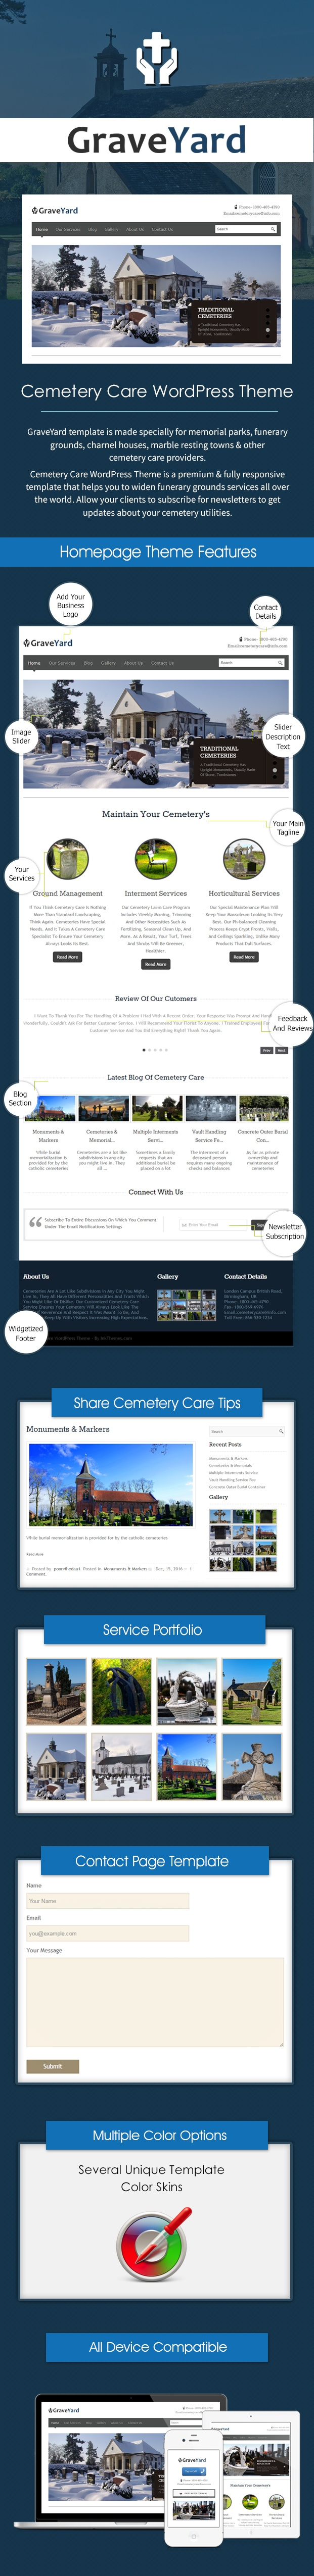 graveyard cemetery care wordpress theme template inkthemes. Black Bedroom Furniture Sets. Home Design Ideas